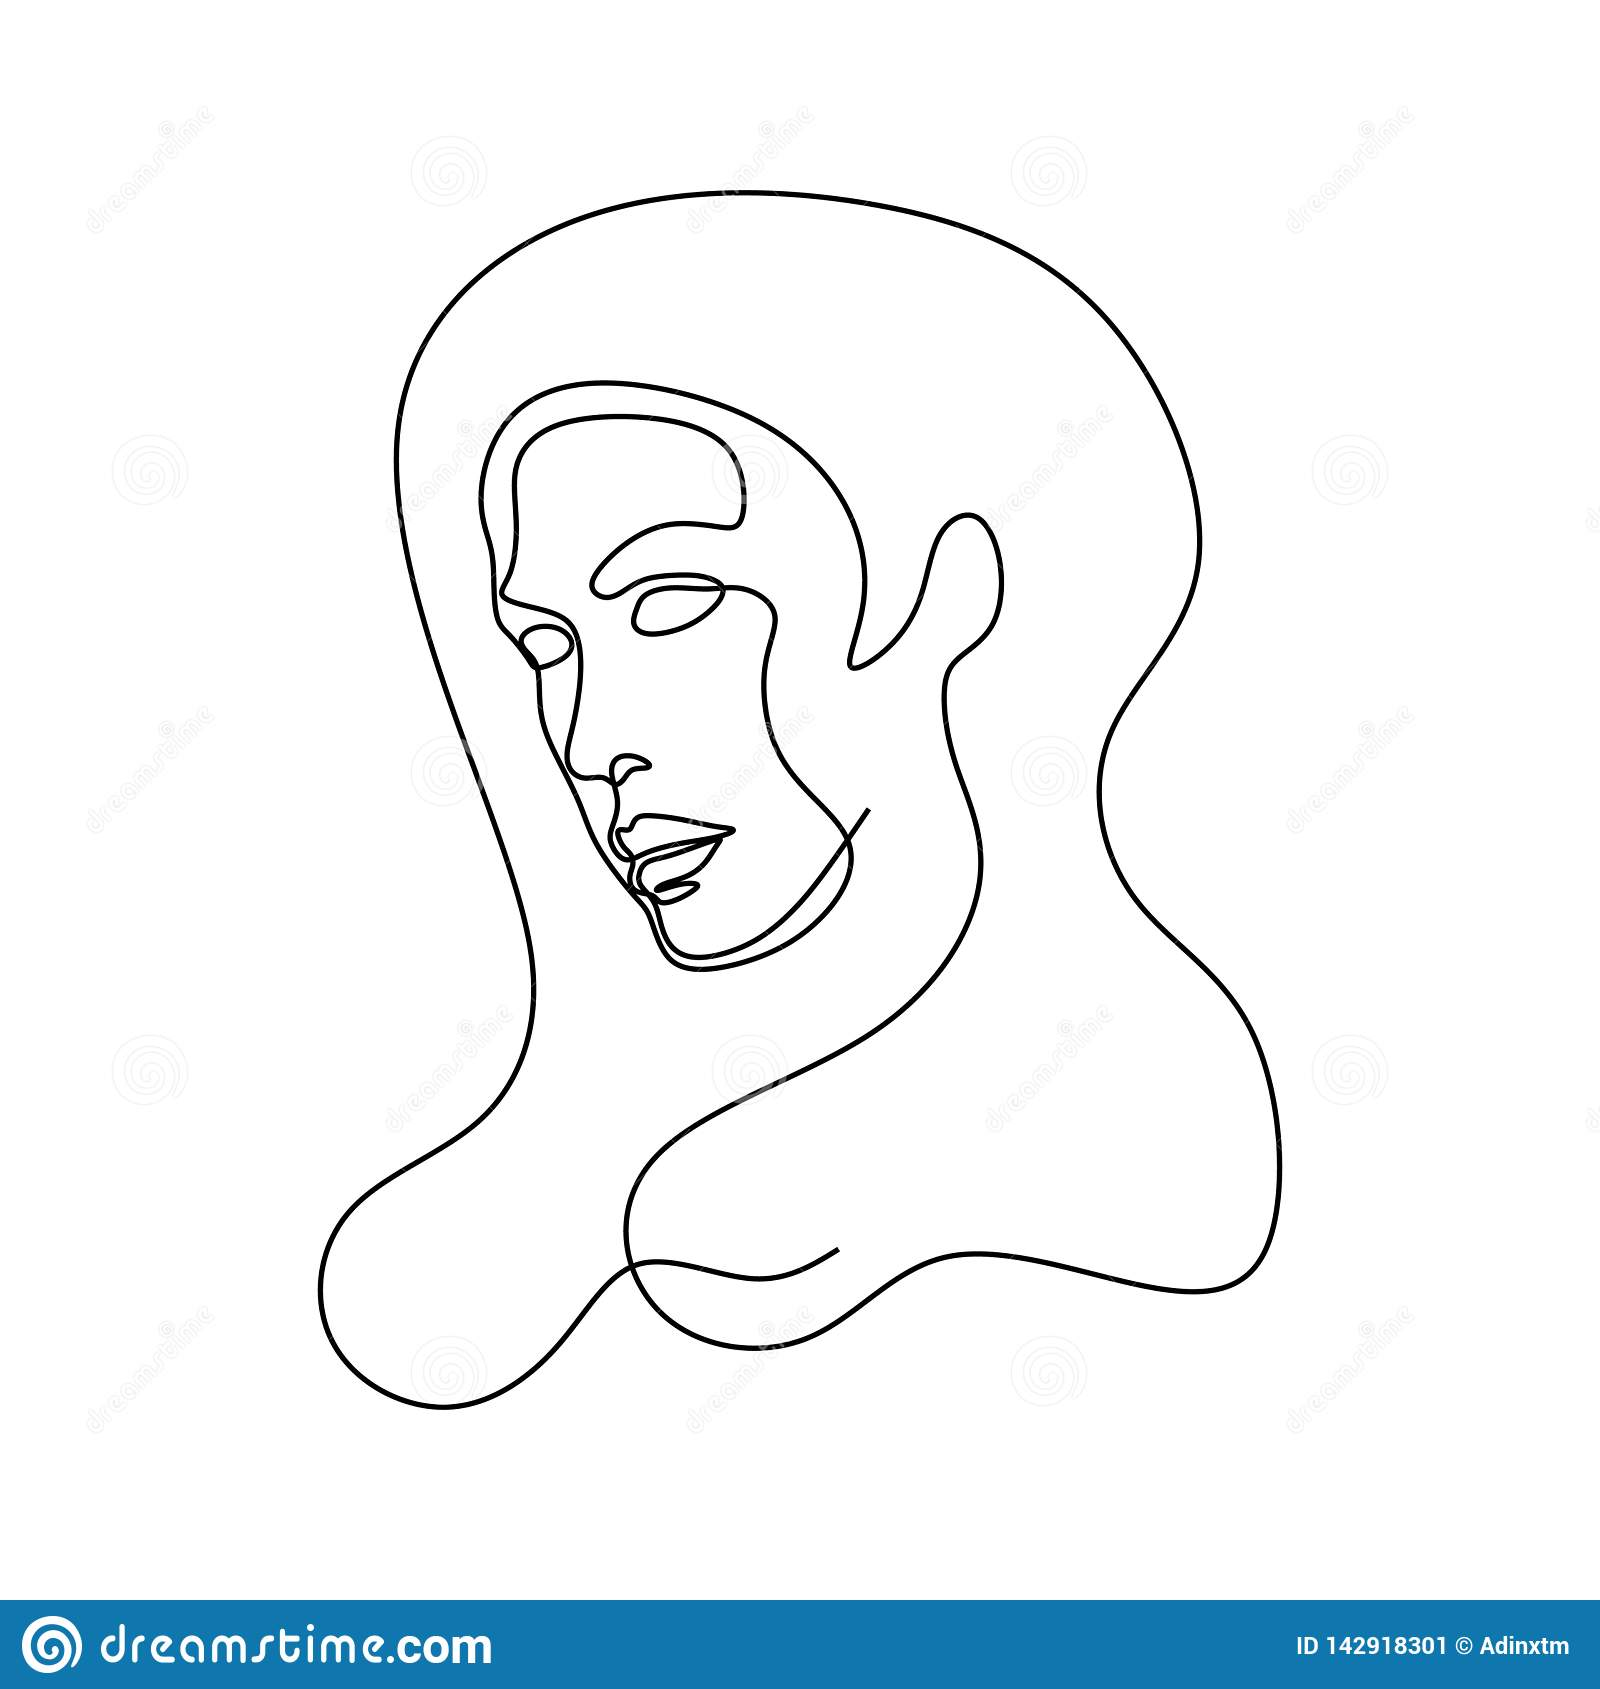 Abstract face one line drawing portrait minimalistic continuous style